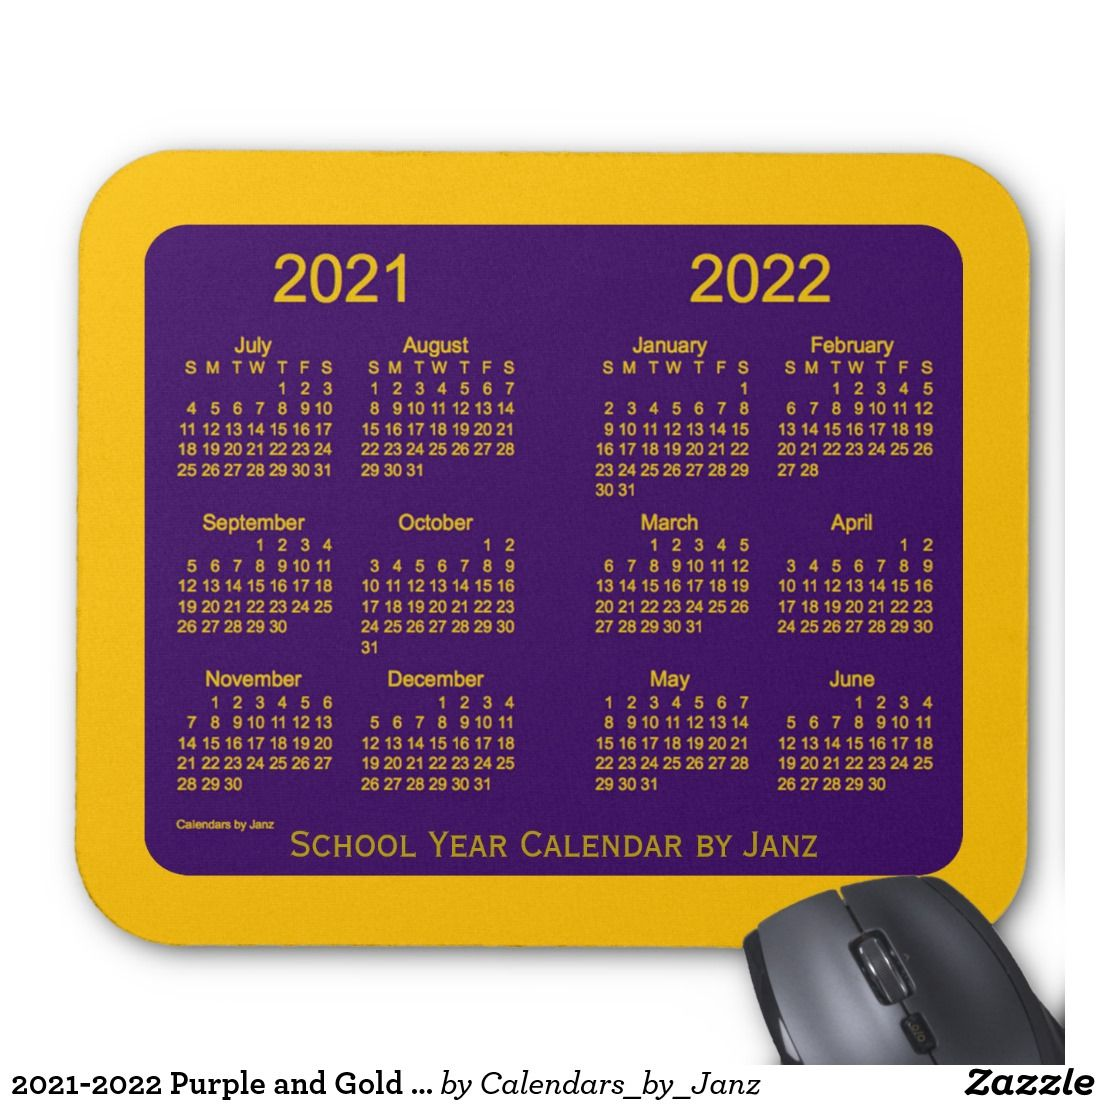 2021 2022 Purple and Gold School Calendar by Janz Mouse Pad